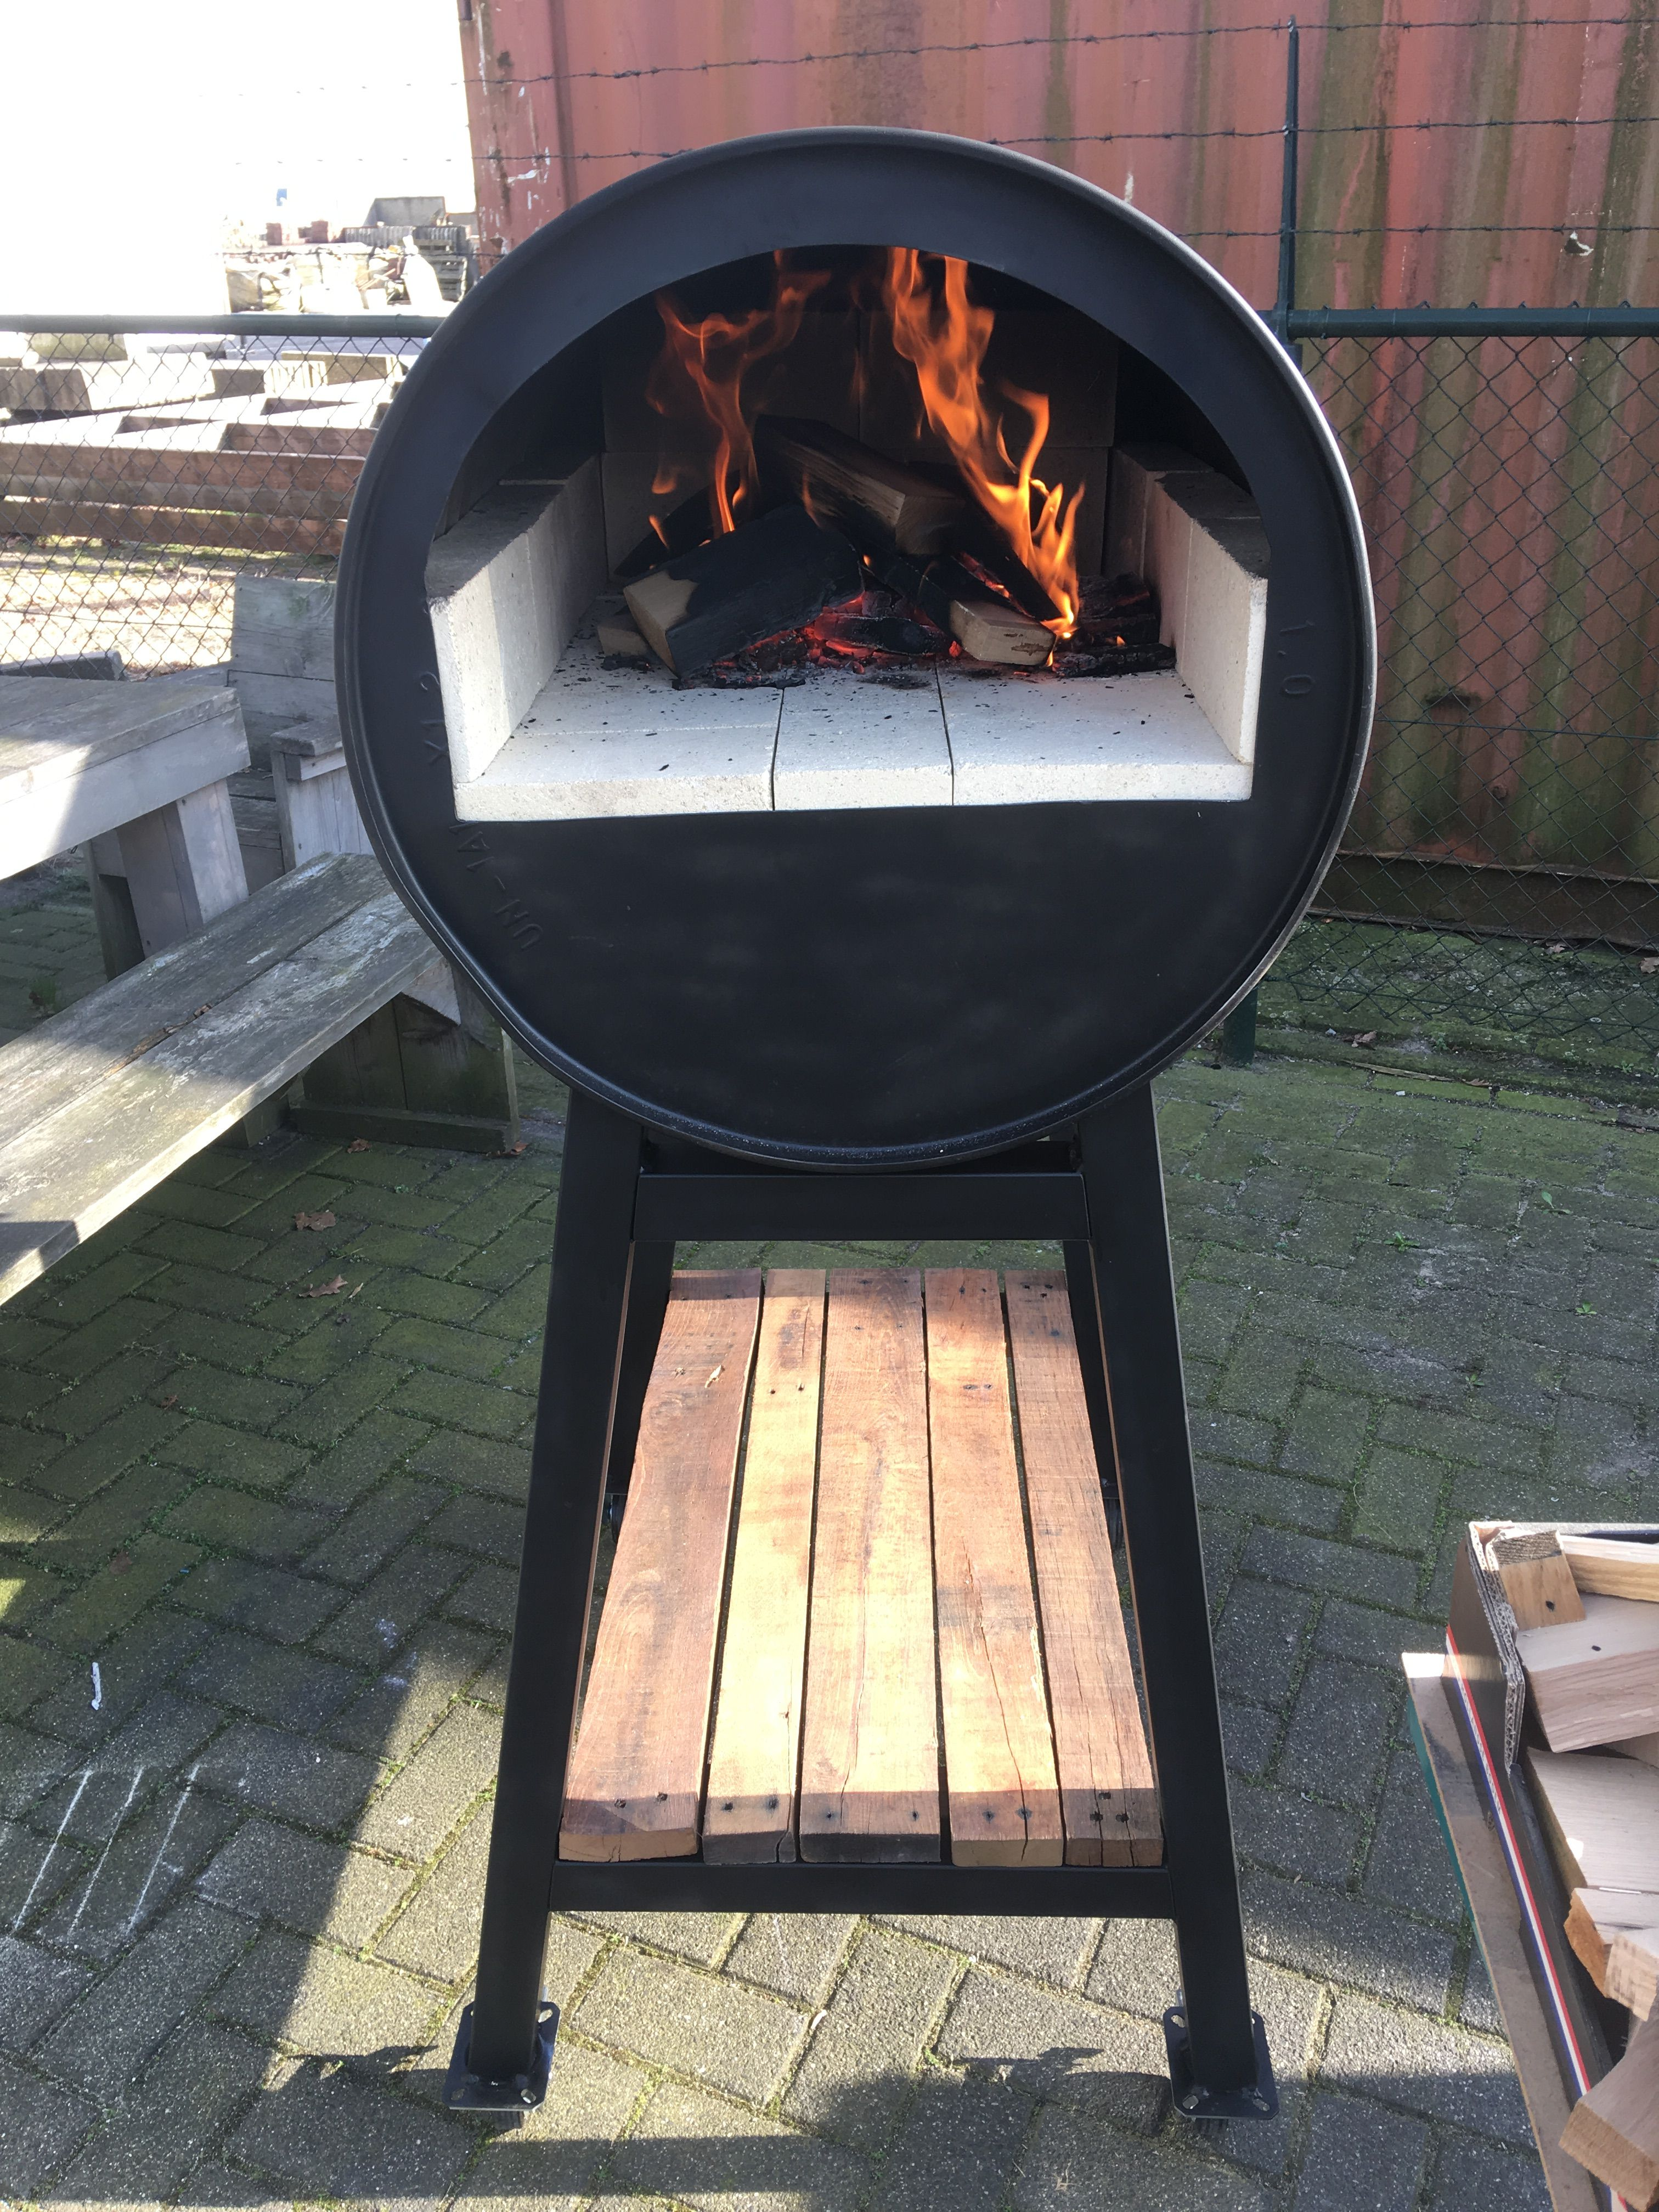 Poolheizung Diy Oil Drum Pizza Oven Send An E Mail To Info Ocmaatwerk Nl